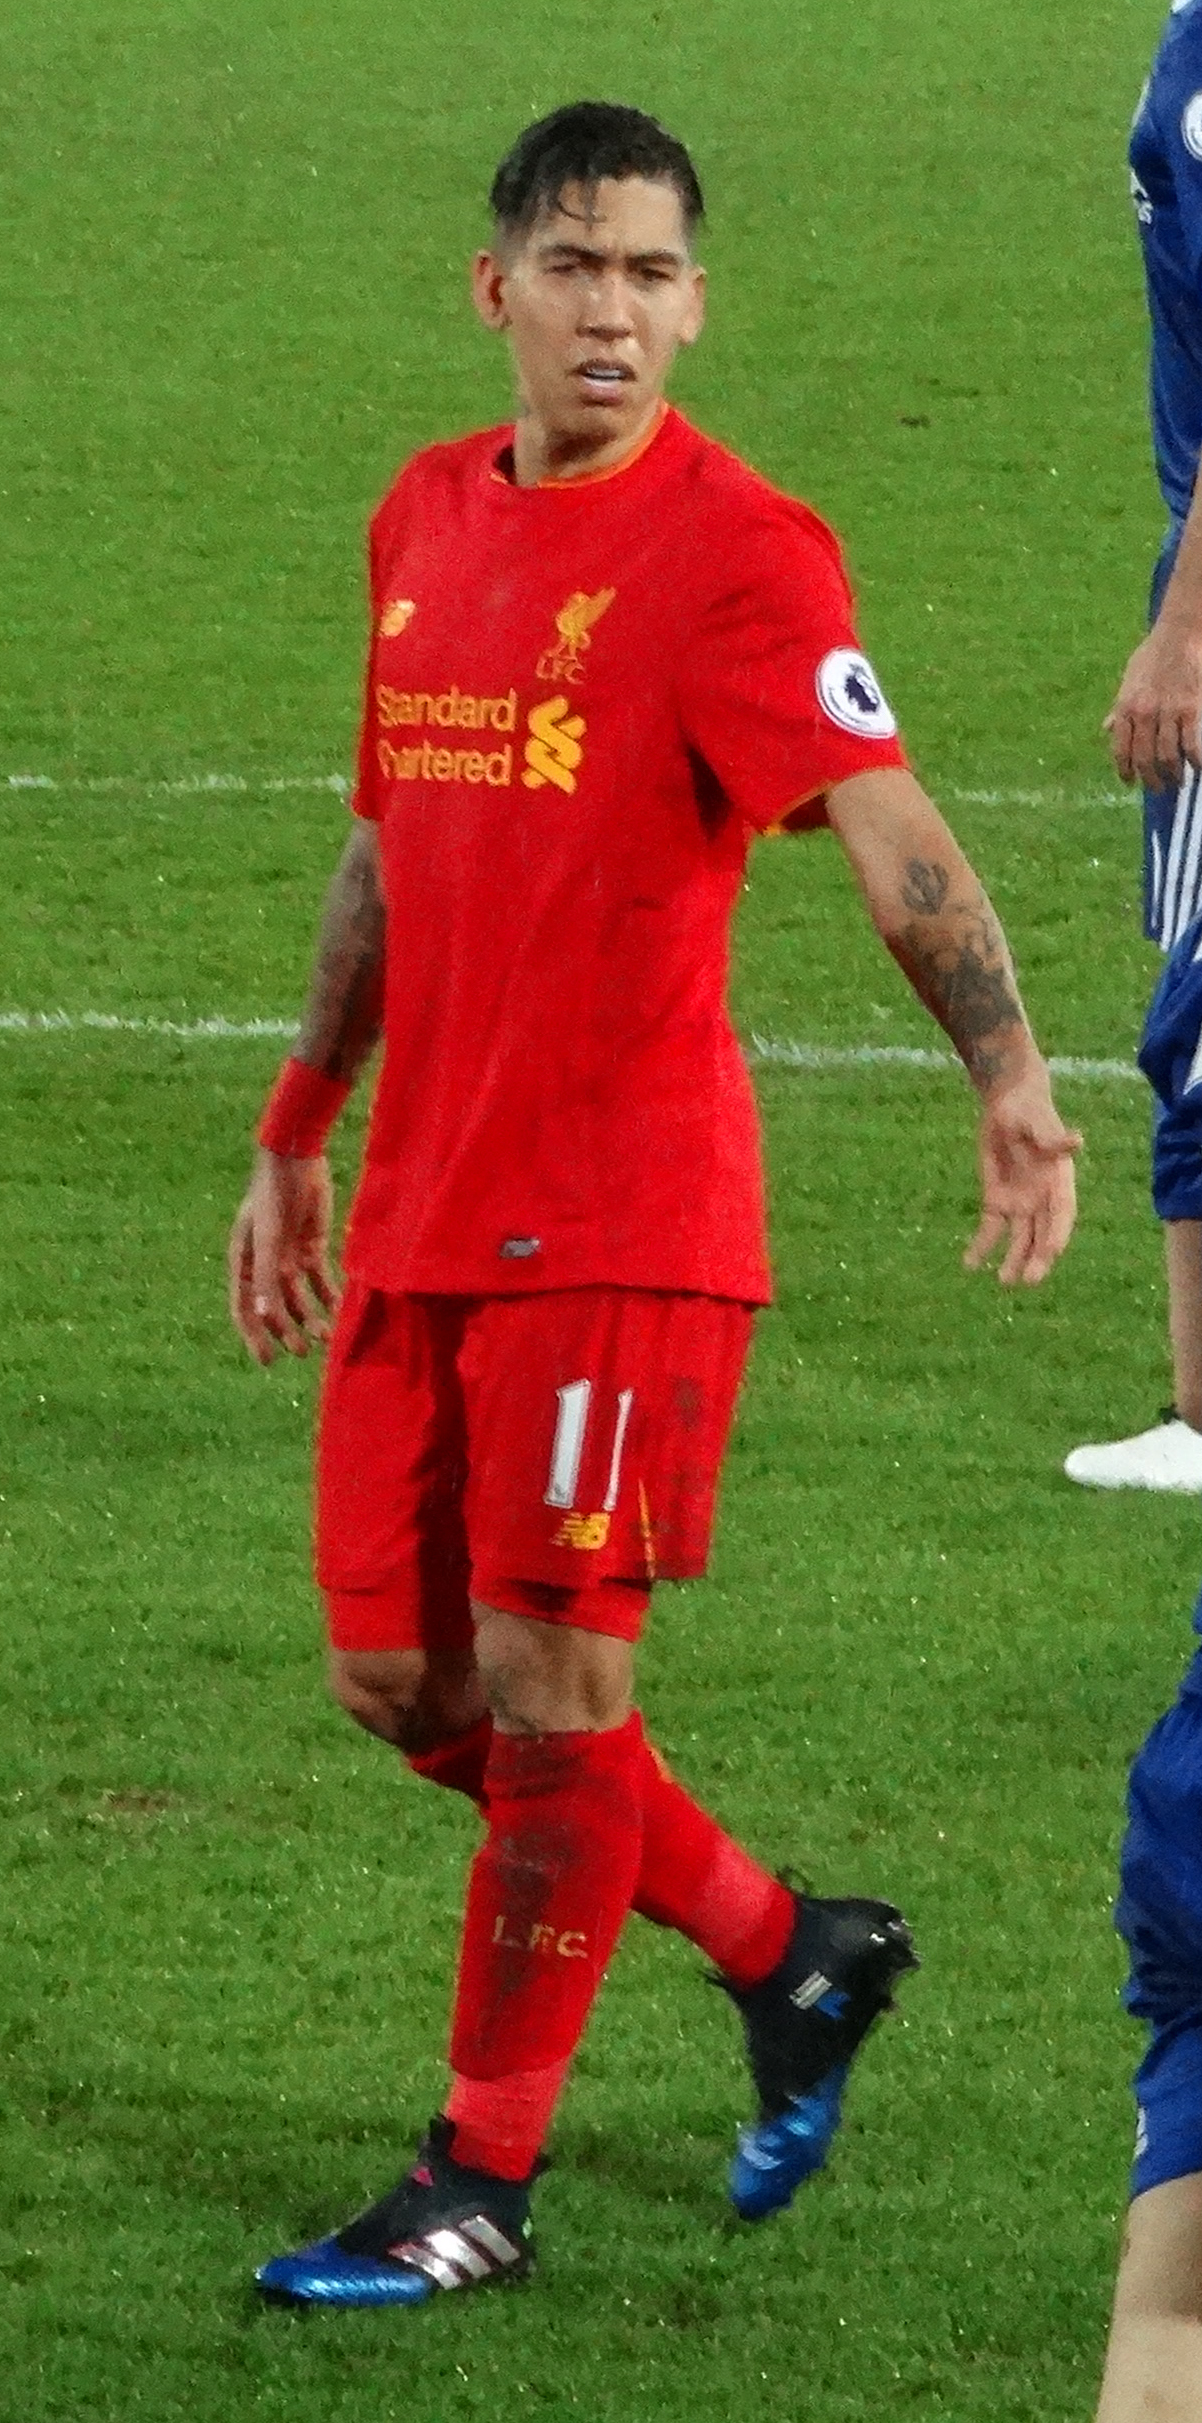 Roberto Firmino, Liverpool forward